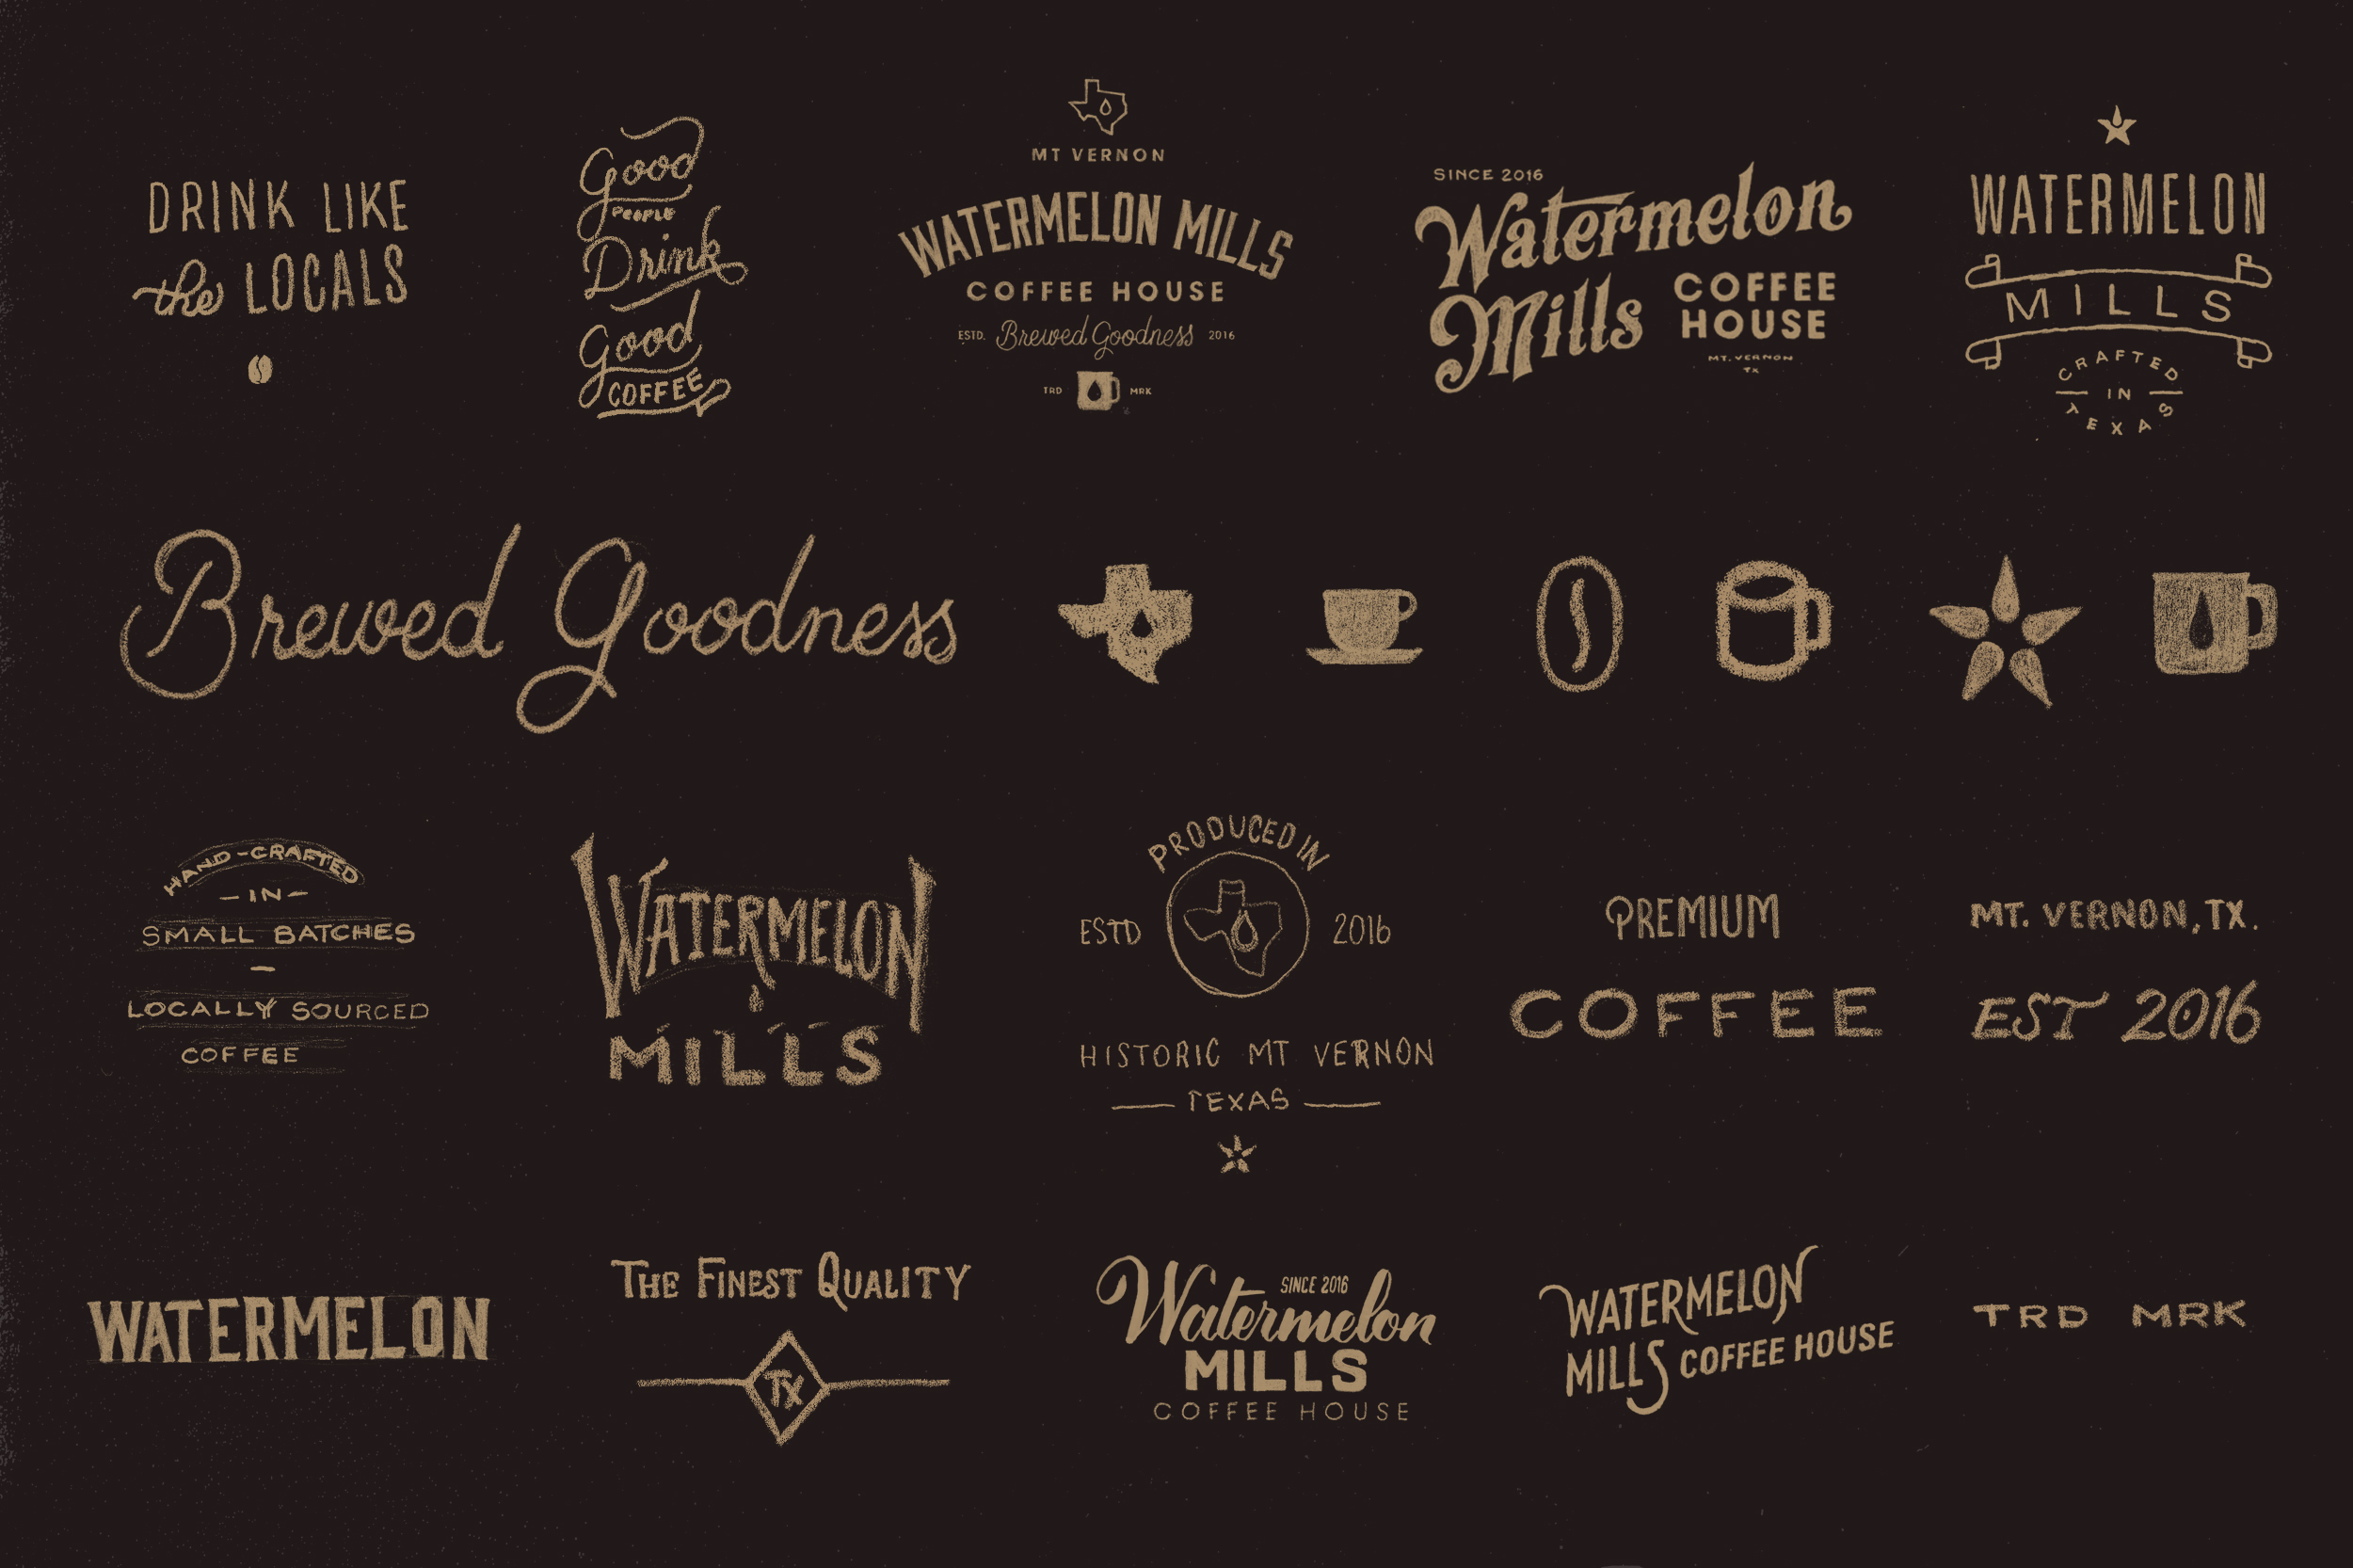 Watermelon Mills logo sketches